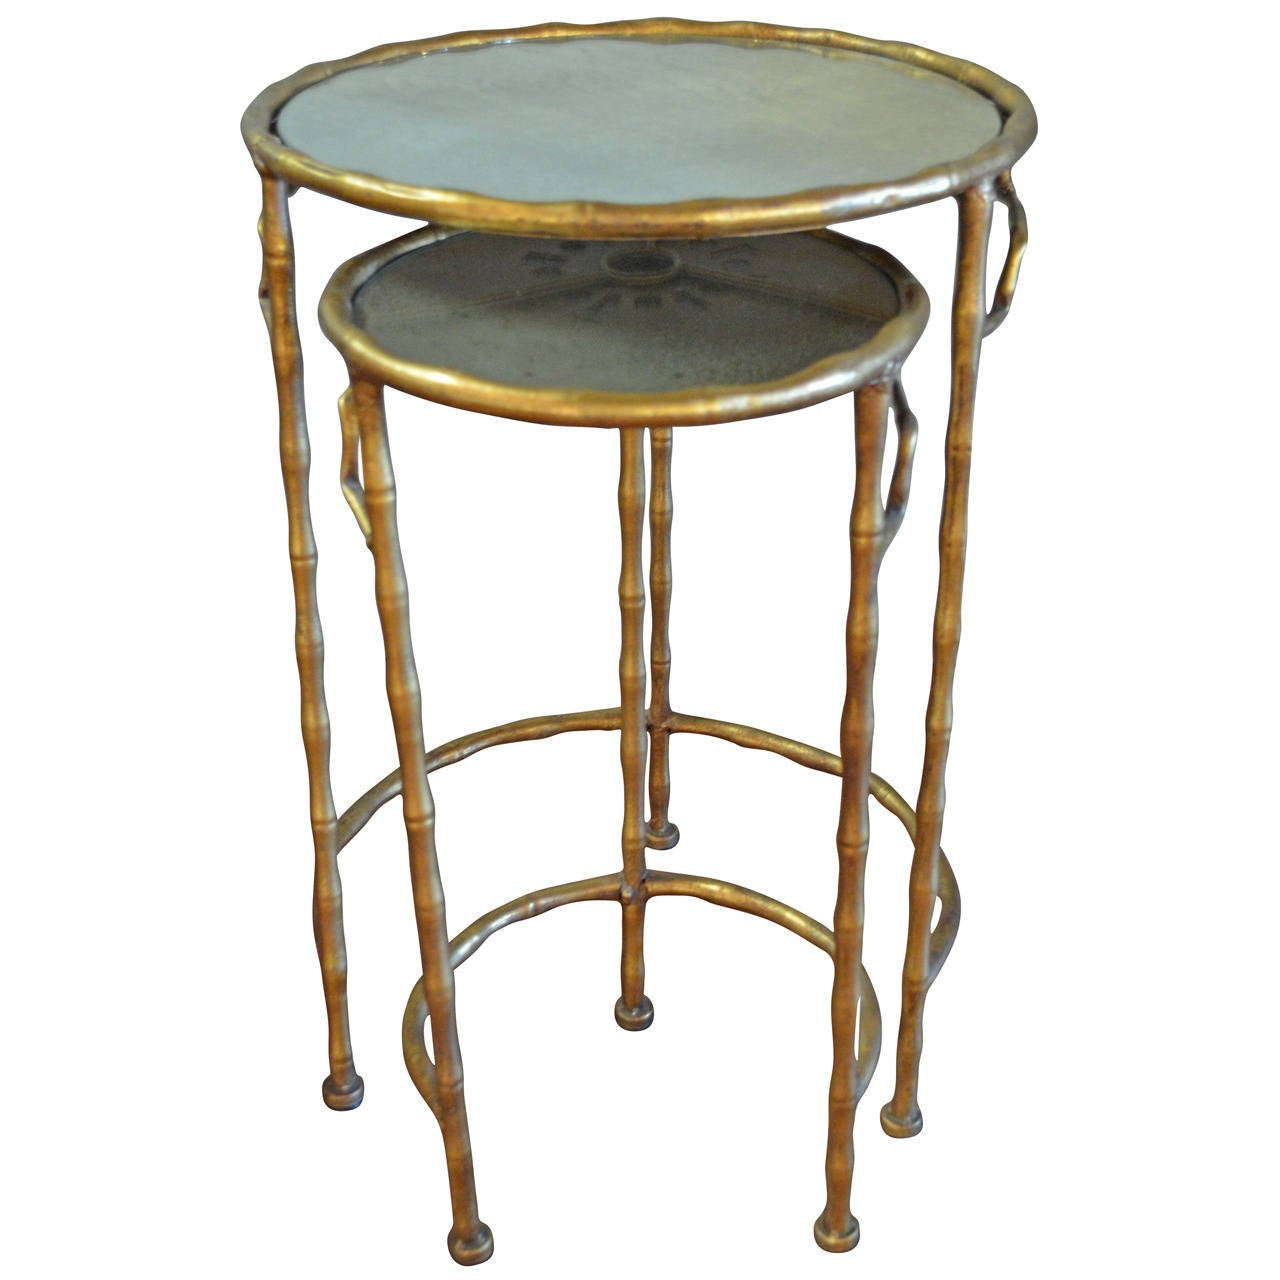 Nest of two gilded metal bamboo style side tables at stdibs